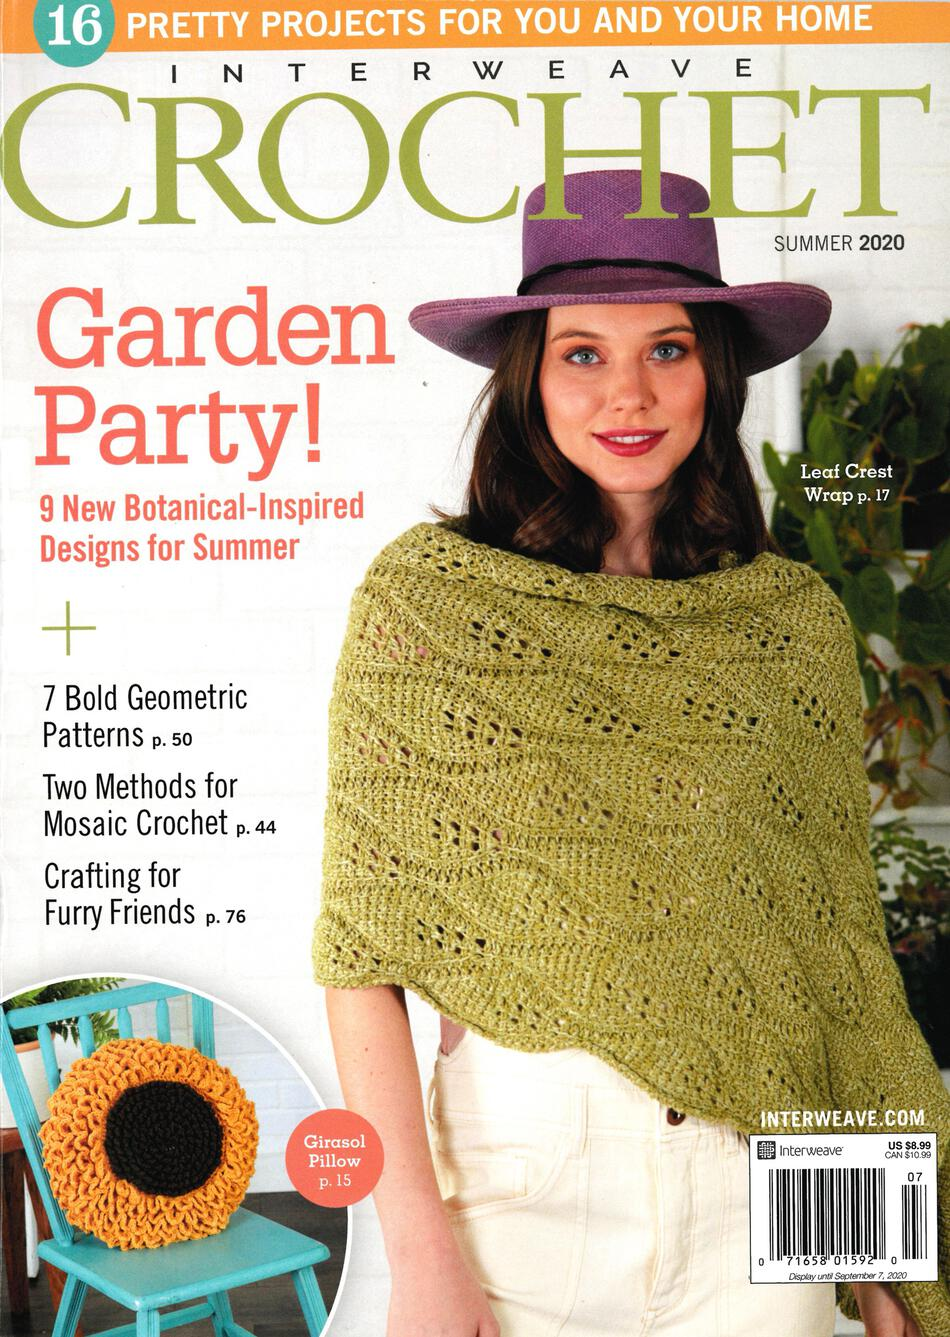 Crochet Magazines Interweave Crochet Summer 2020